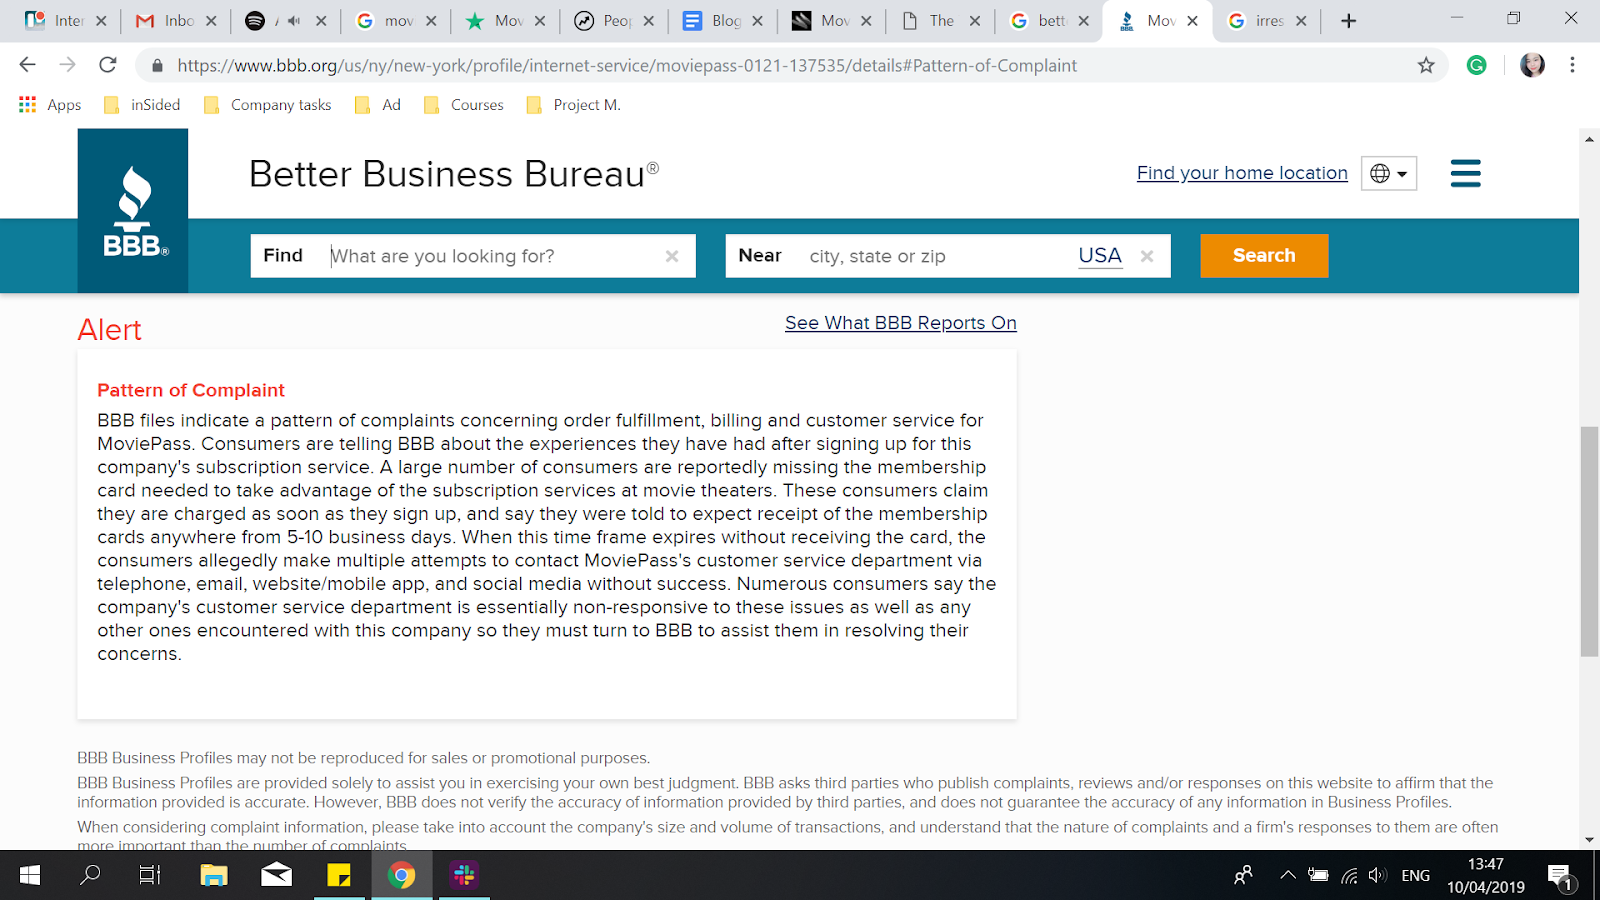 Better Business Bureau review page